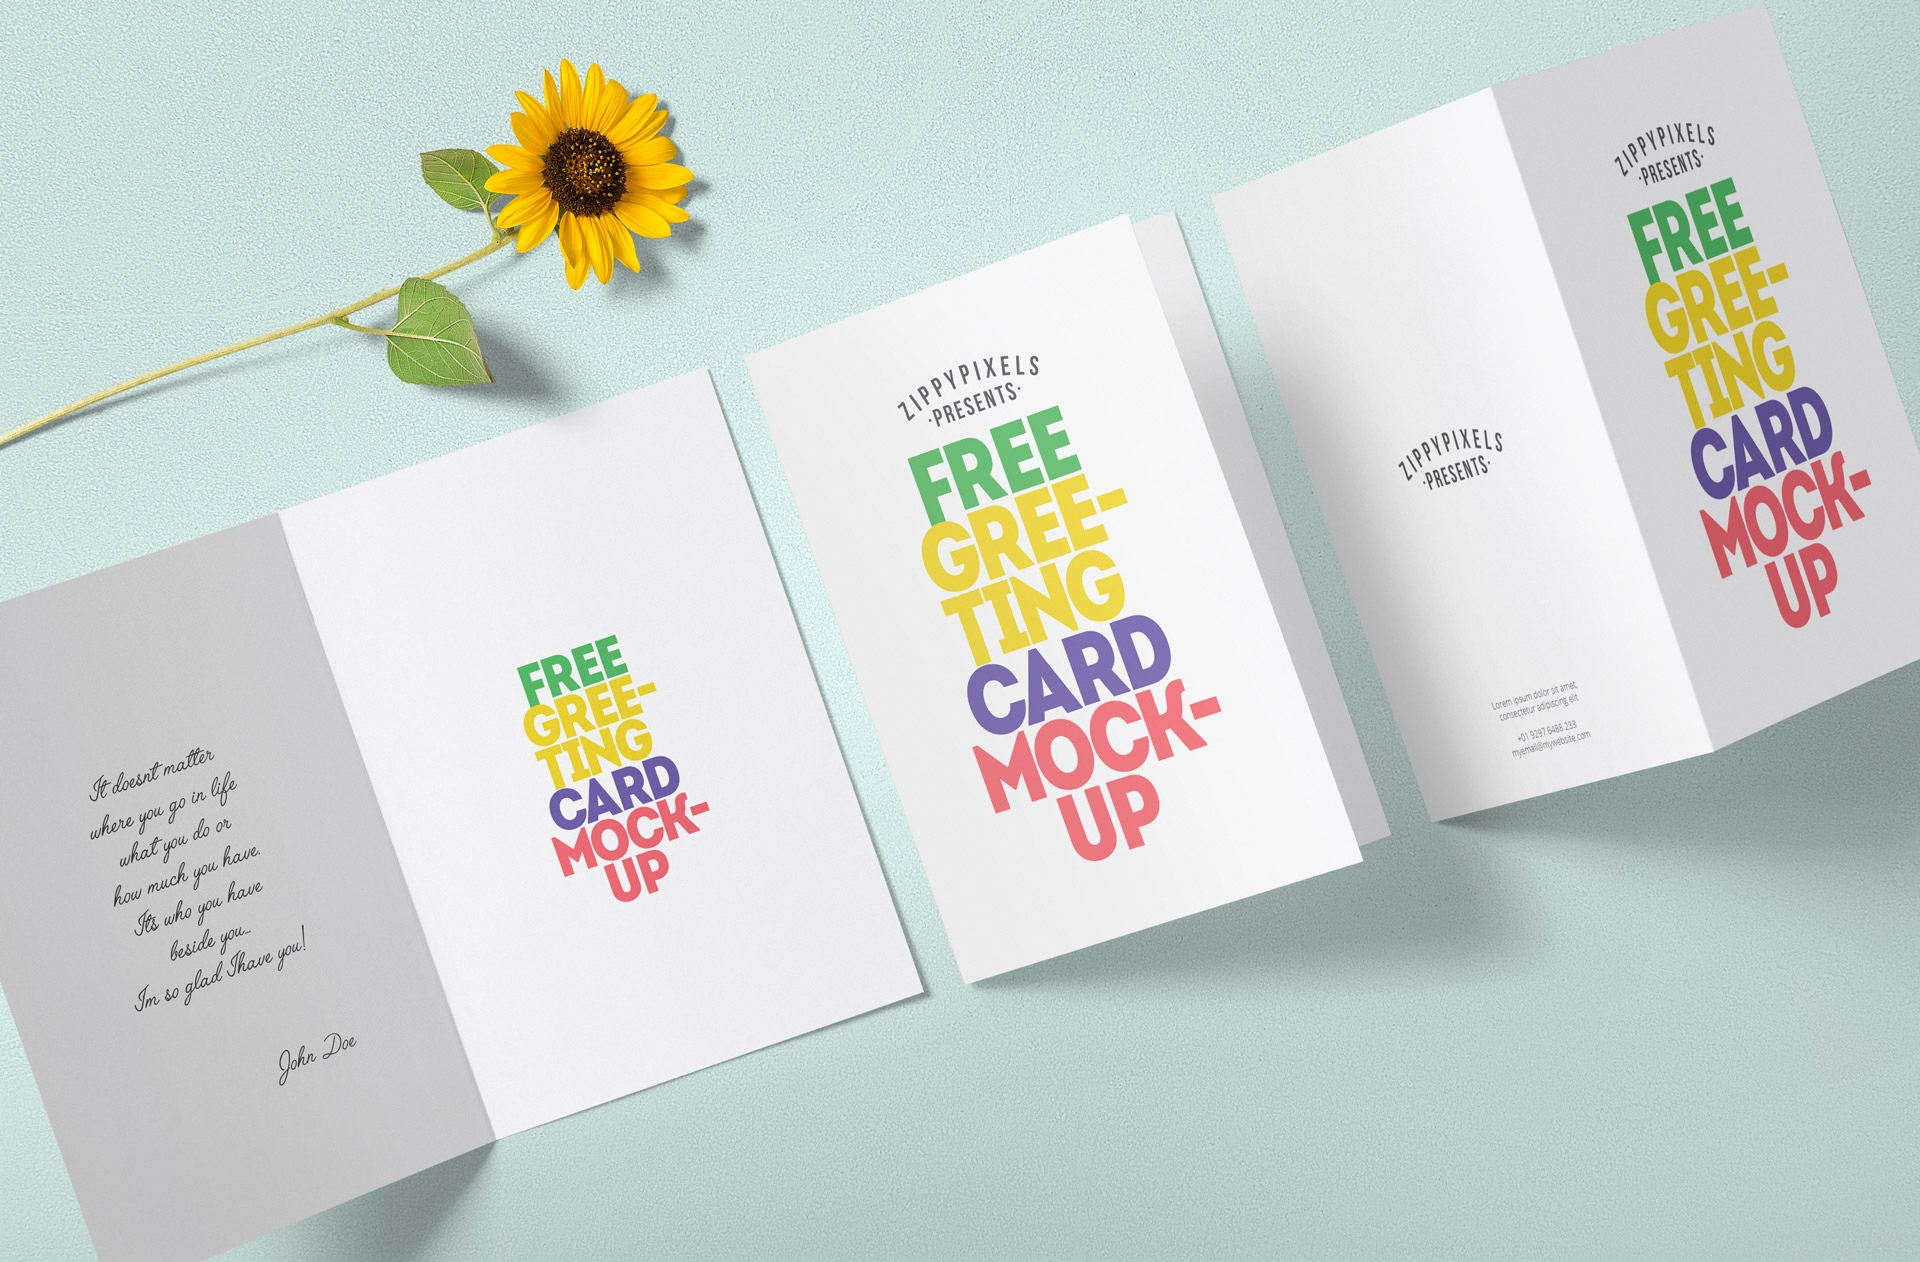 send birthday card to cell phone ; send-a-free-birthday-card-to-cell-phone-lovely-free-greeting-card-mockup-of-send-a-free-birthday-card-to-cell-phone